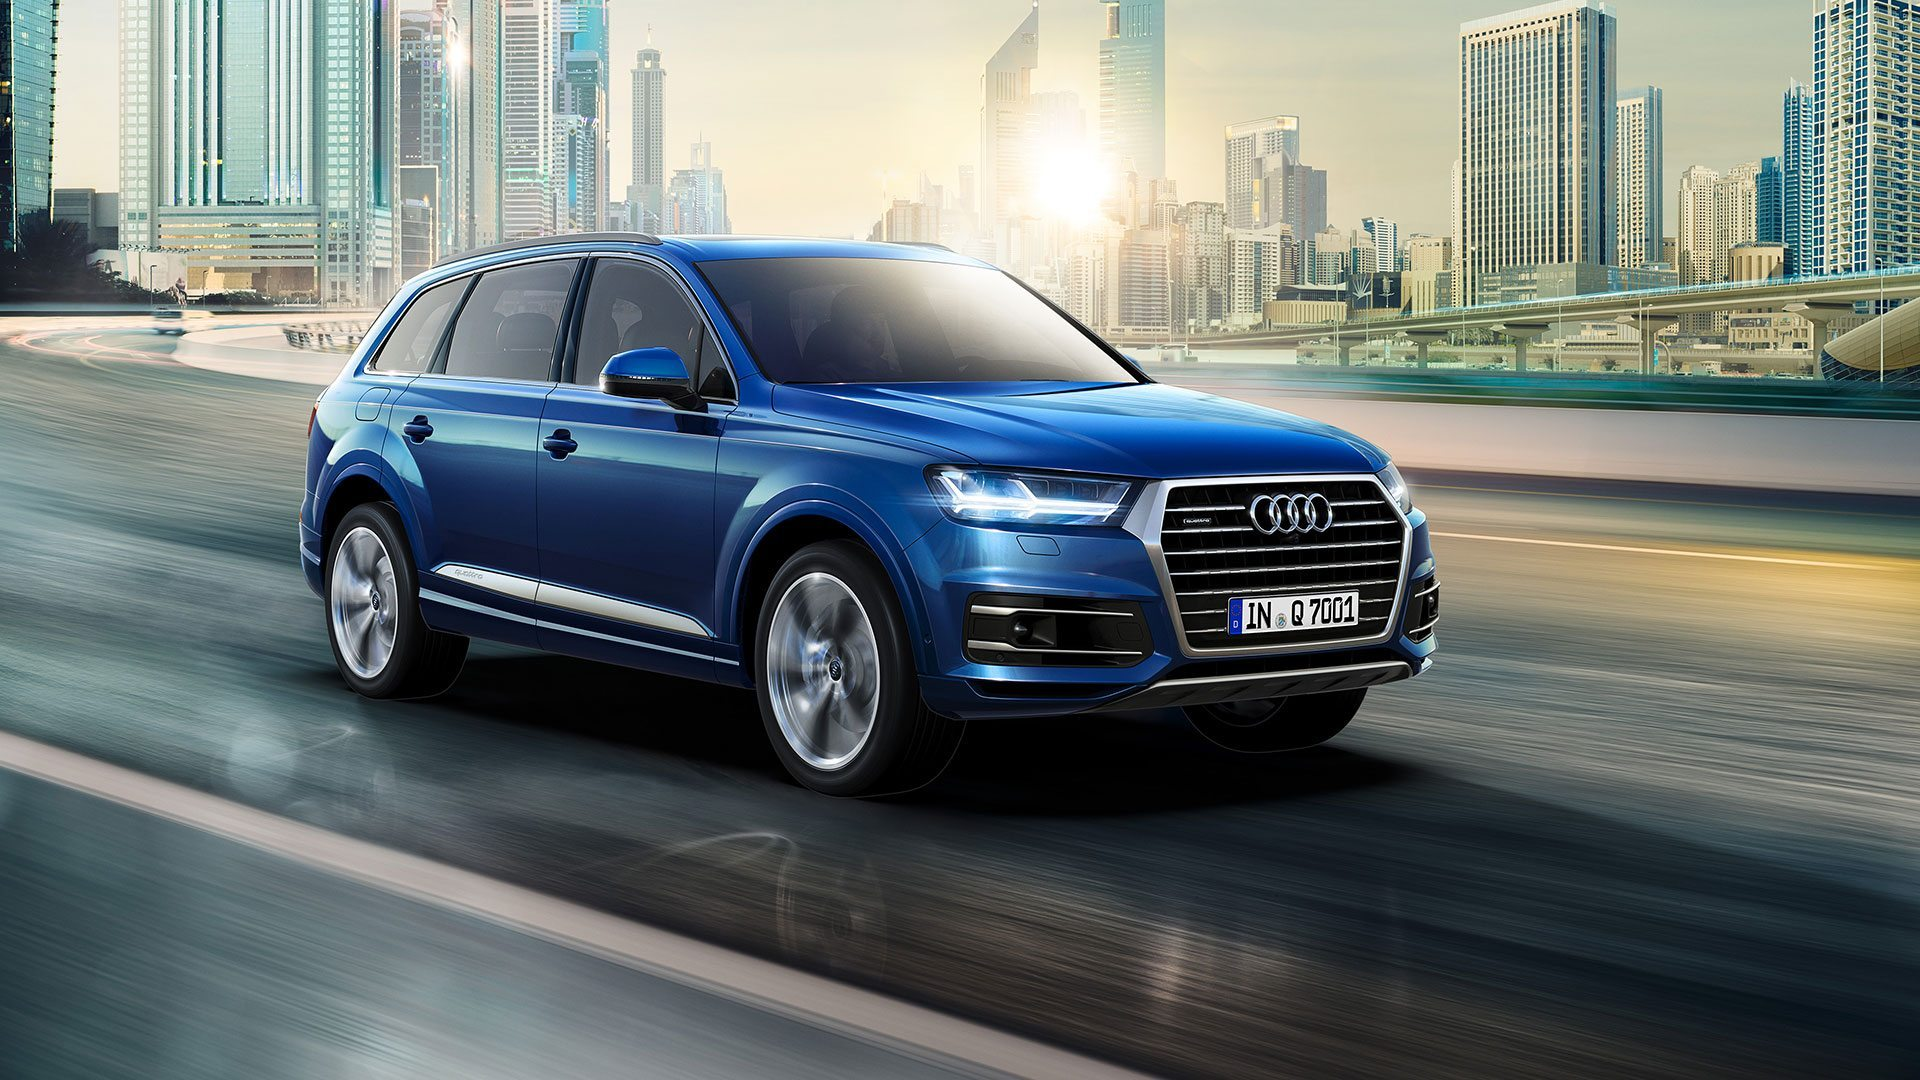 2018 Audi Q7 45 TFSI Sport Car : 2018 Audi Q7 Car Price, Engine, Full Technical Specifications ...